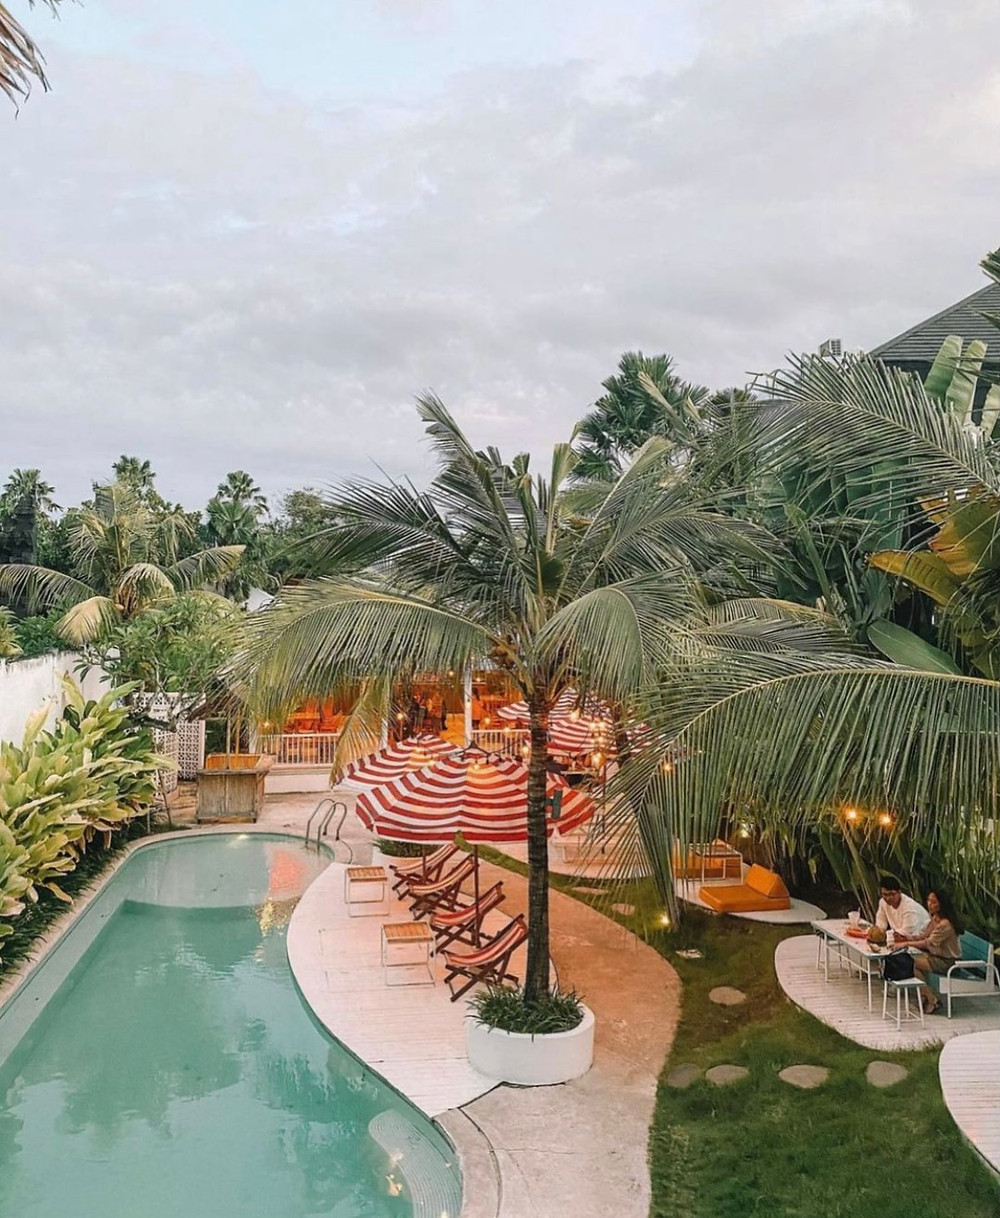 Panama kitchen Bali restaurant with pool and garden